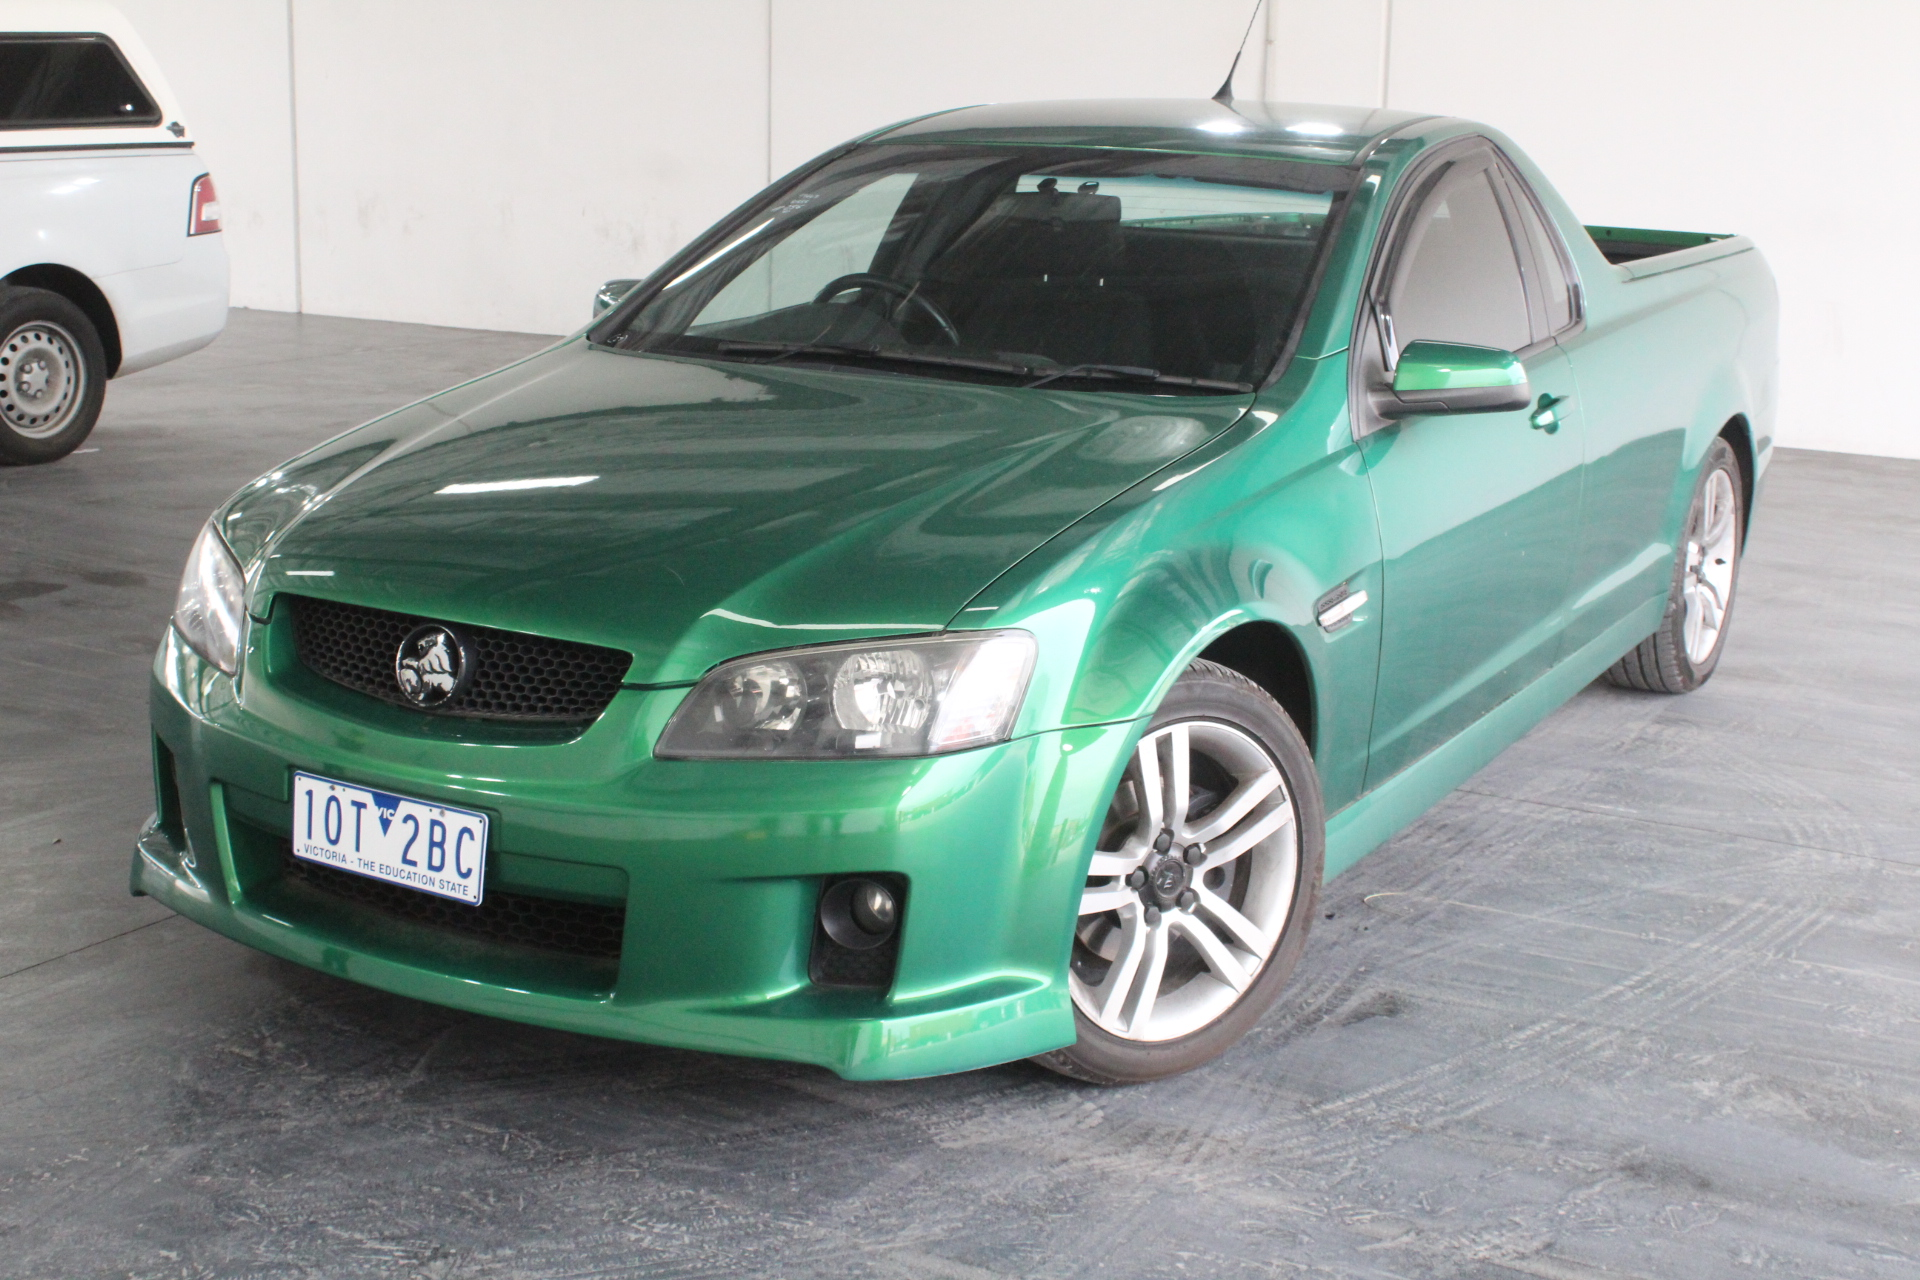 2010 Holden Commodore SV6 VE Automatic Ute